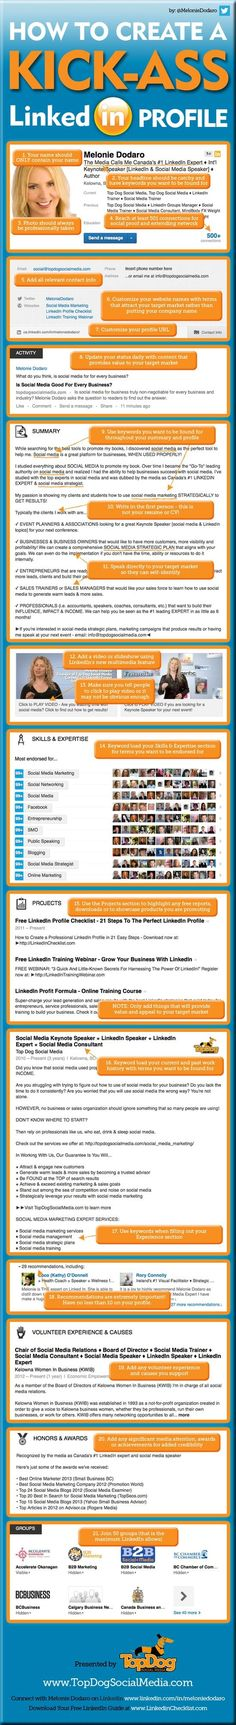 How to Create a kickass LinkedIn Profile. #linkedin